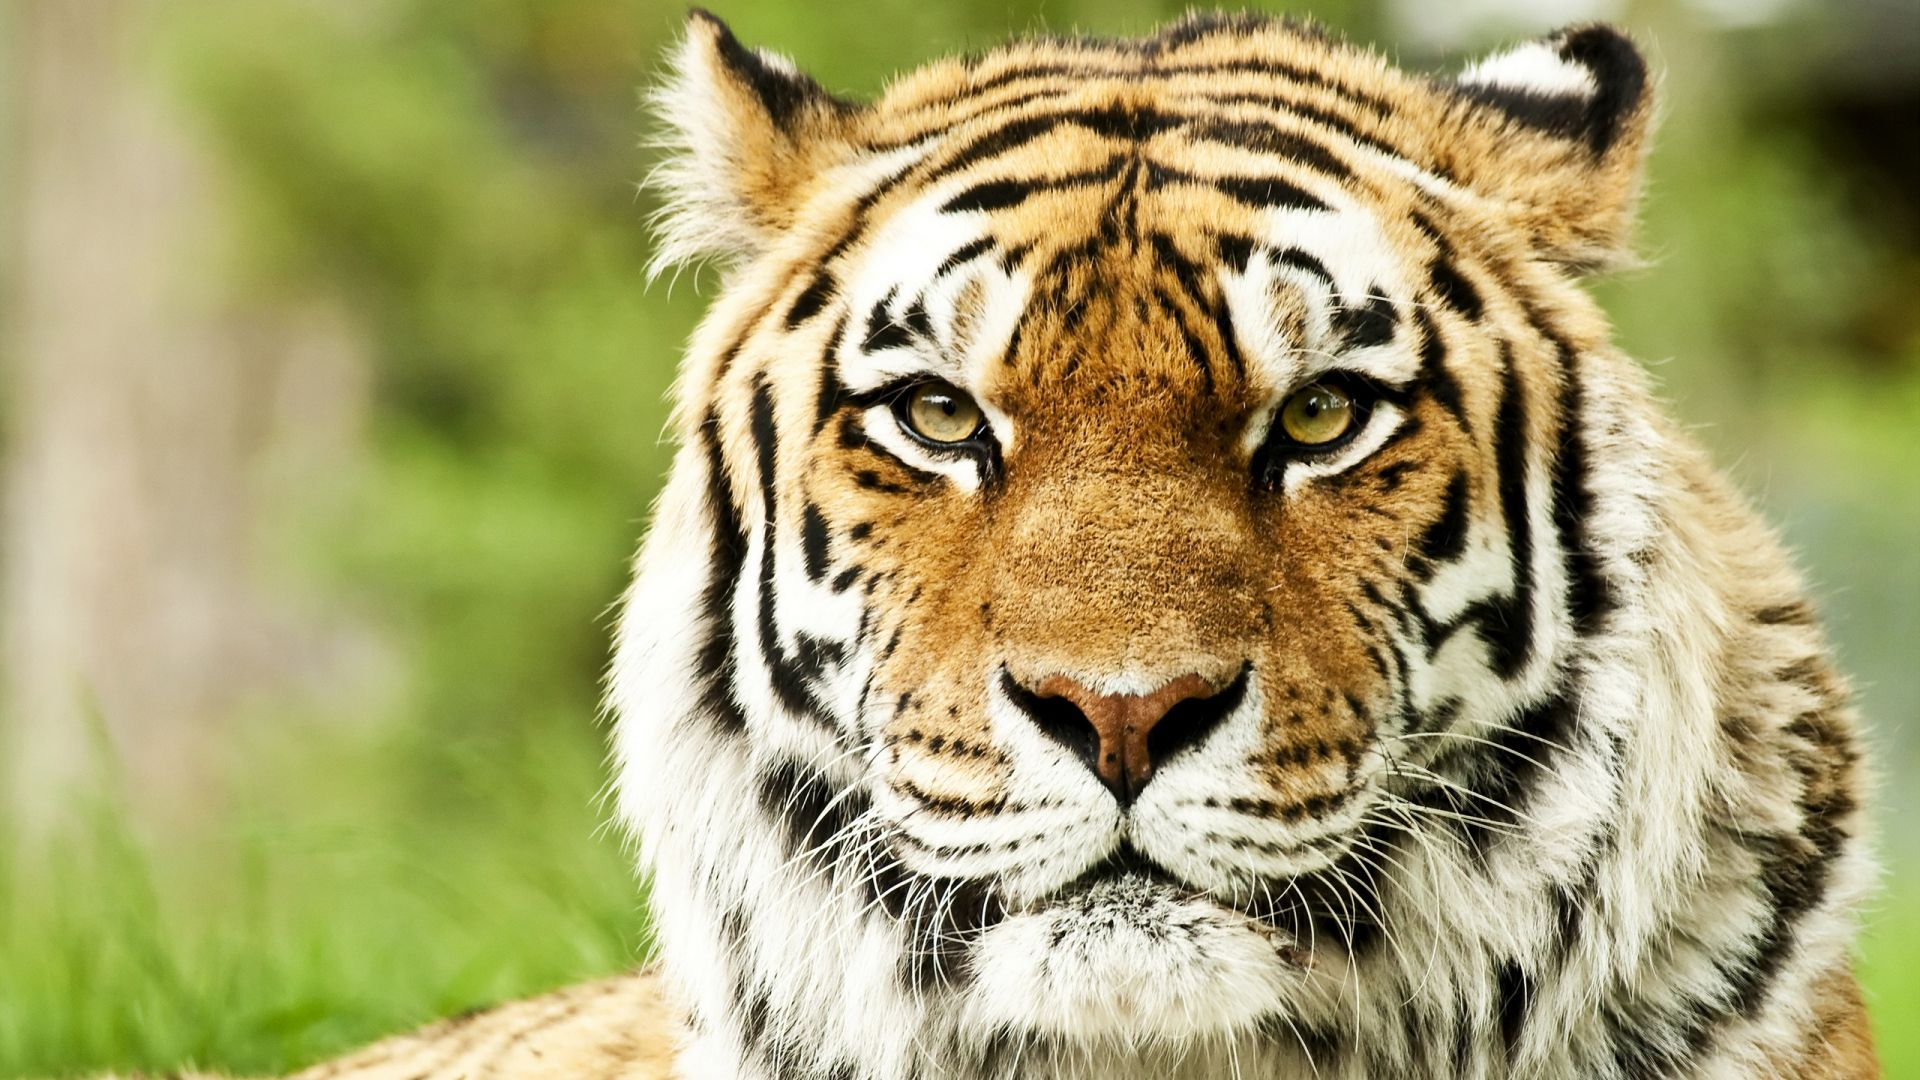 Full HD 1080p Tiger Wallpapers HD, Desktop Backgrounds